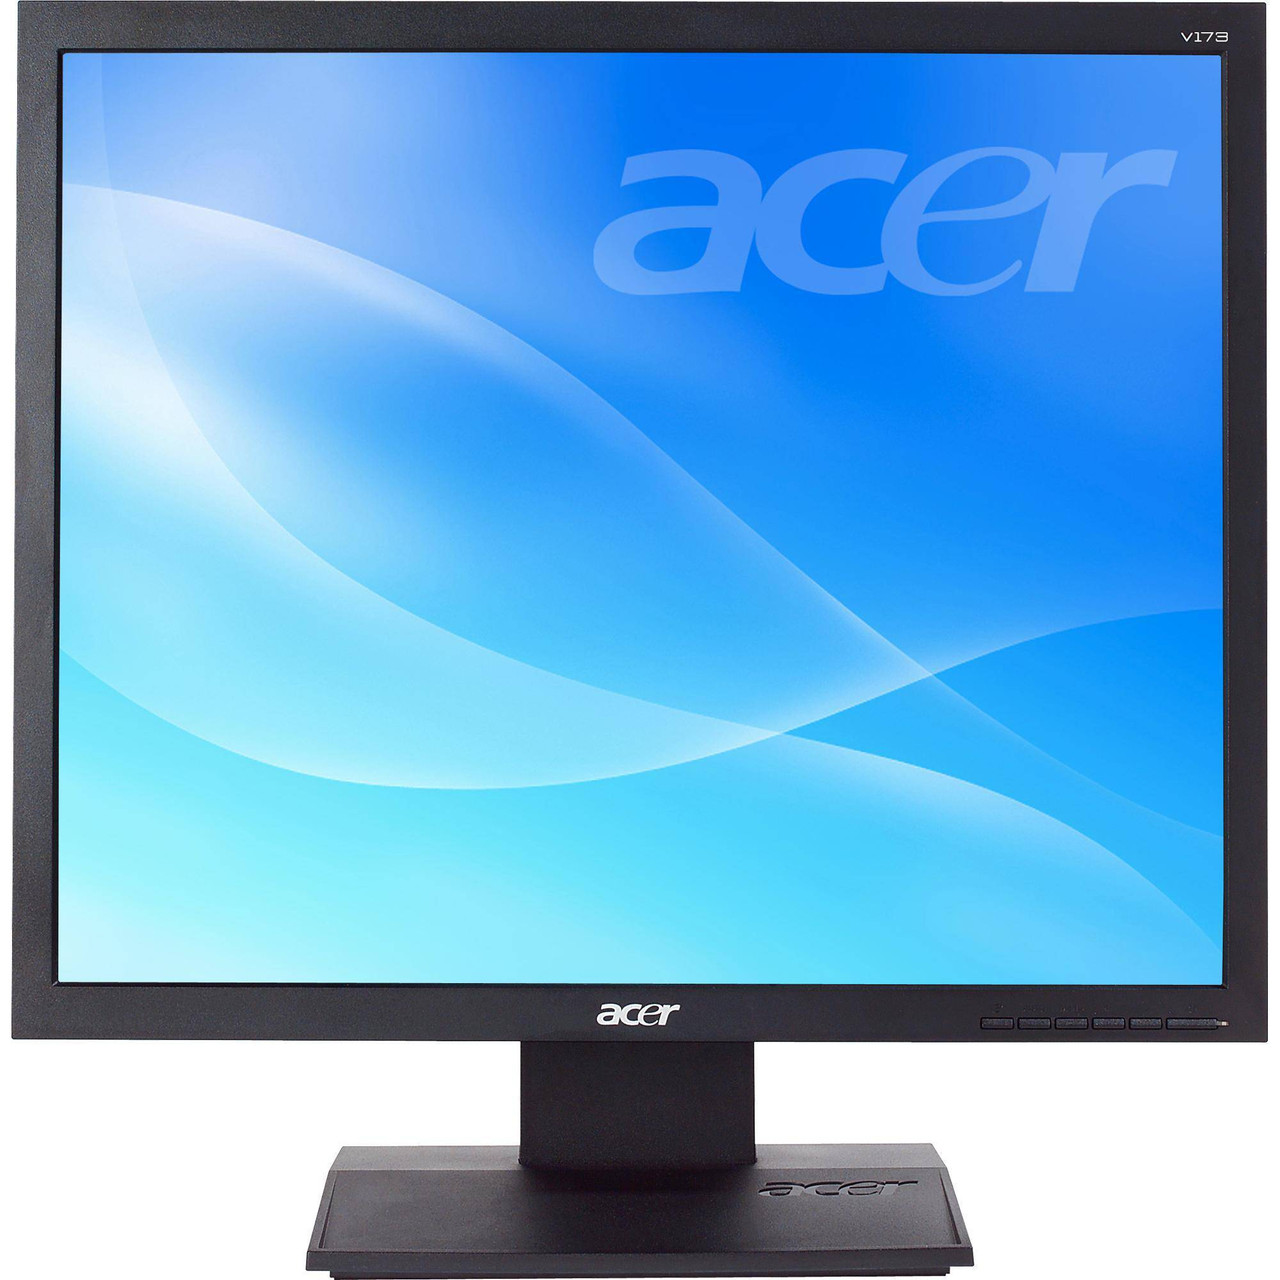 ACER V173 MONITOR WINDOWS DRIVER